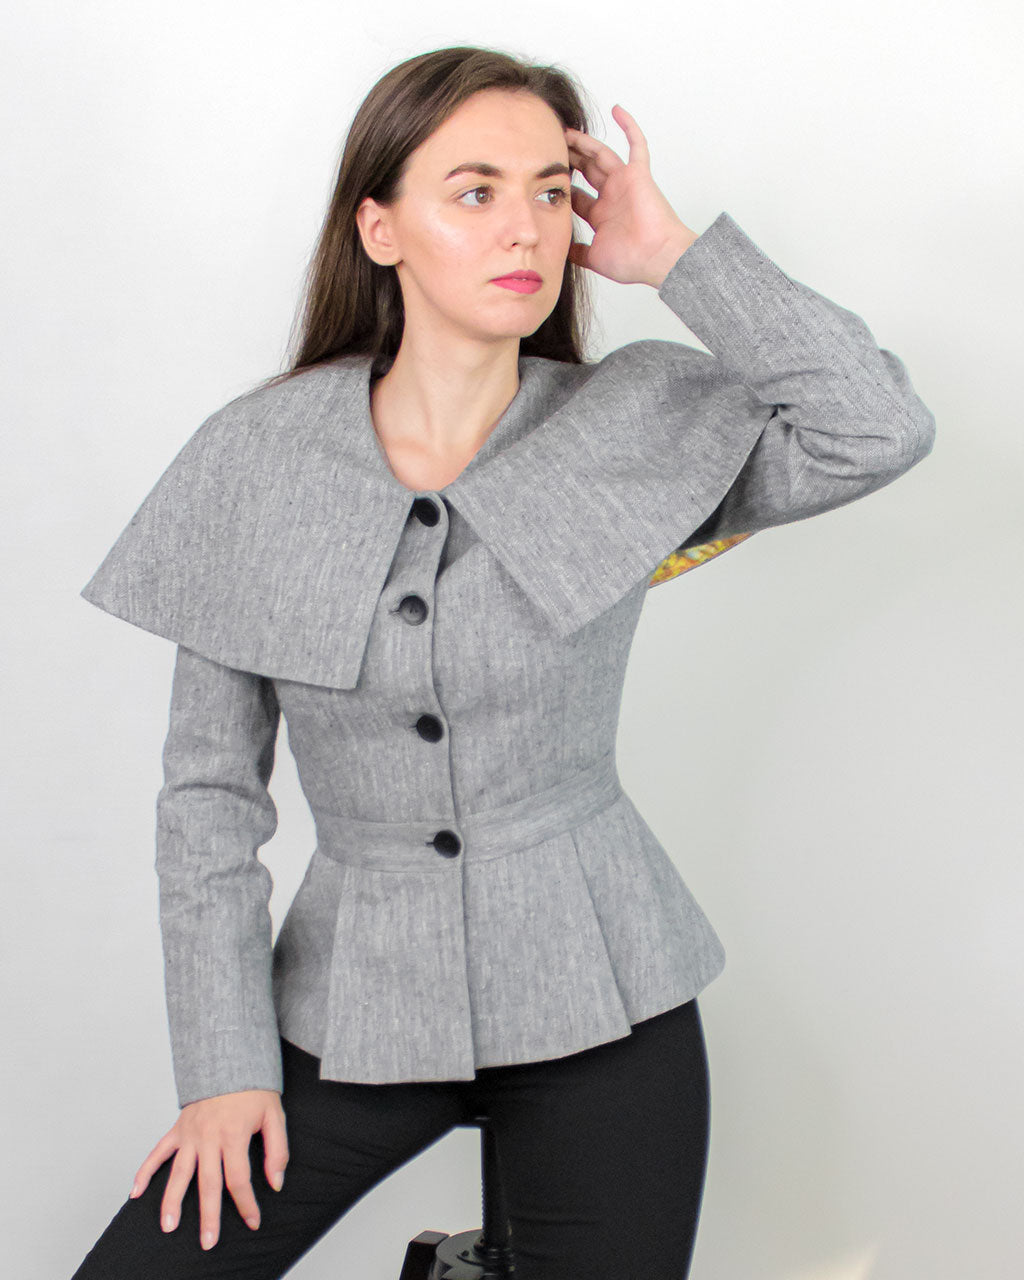 Peplum and cape detail of fitted Abbe Jacket with Corozo buttons by ADKN made from grey hemp perfect for office